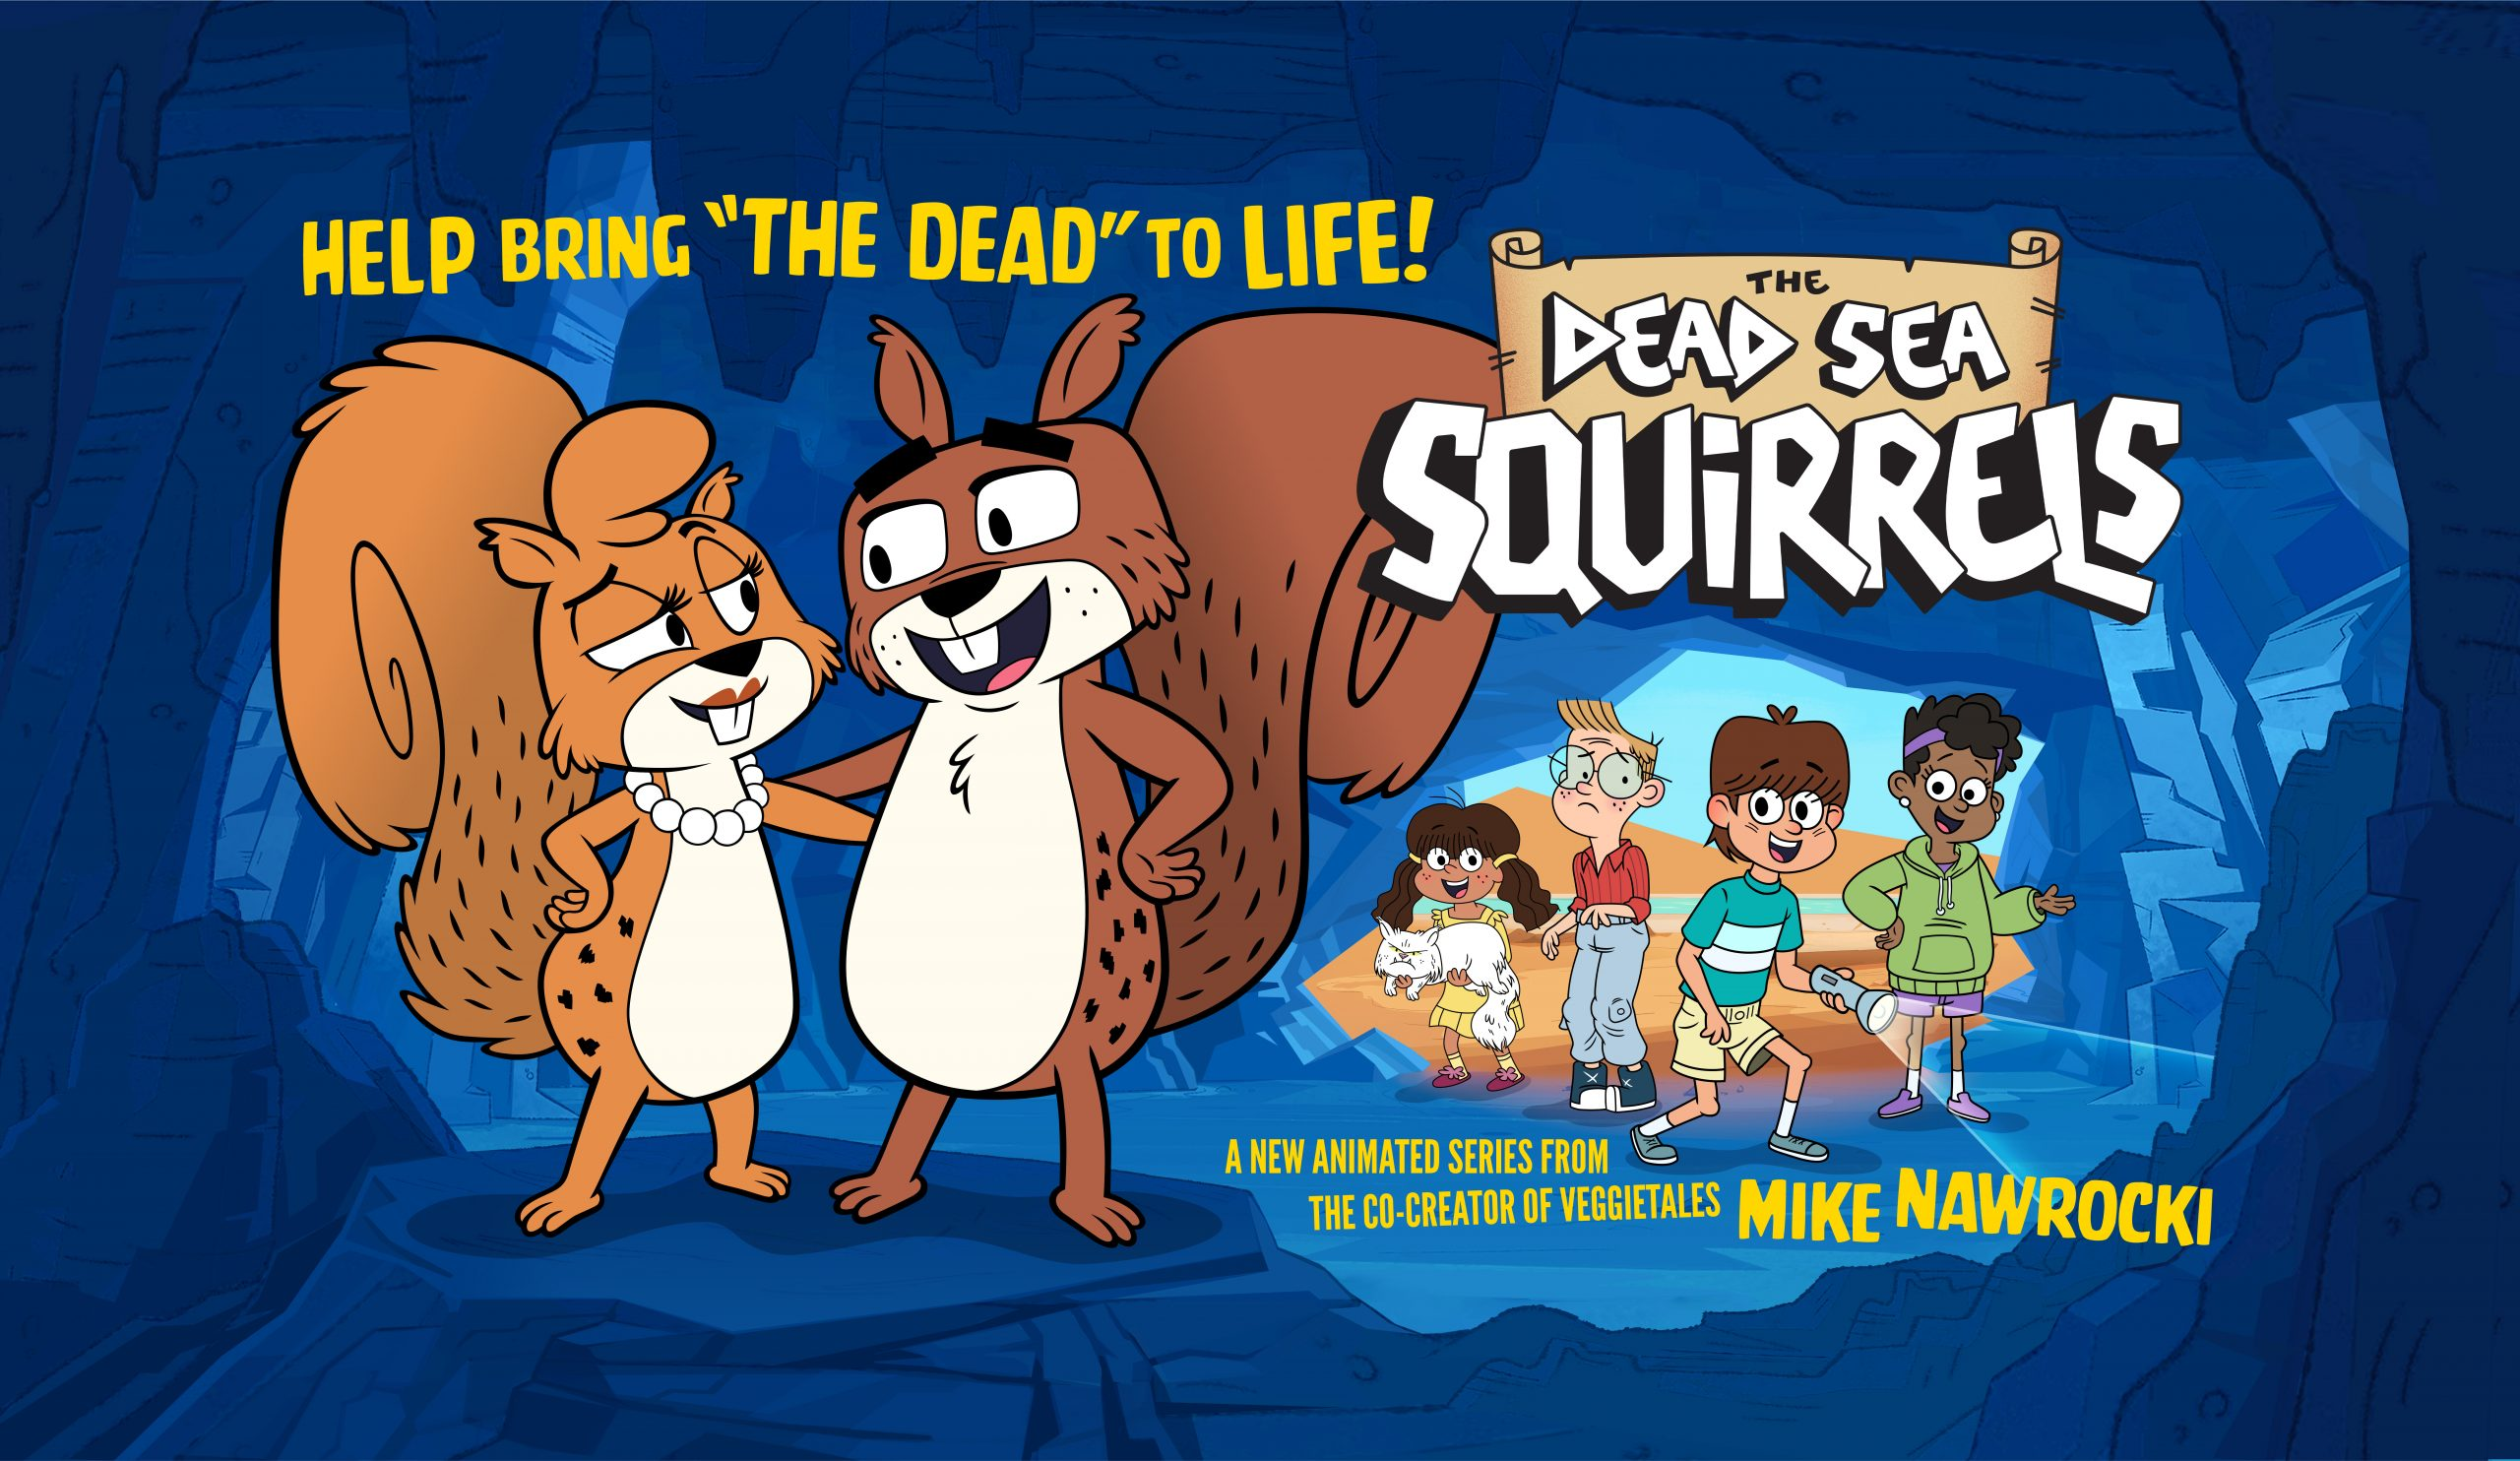 The Dead Sea Squirrels - What??